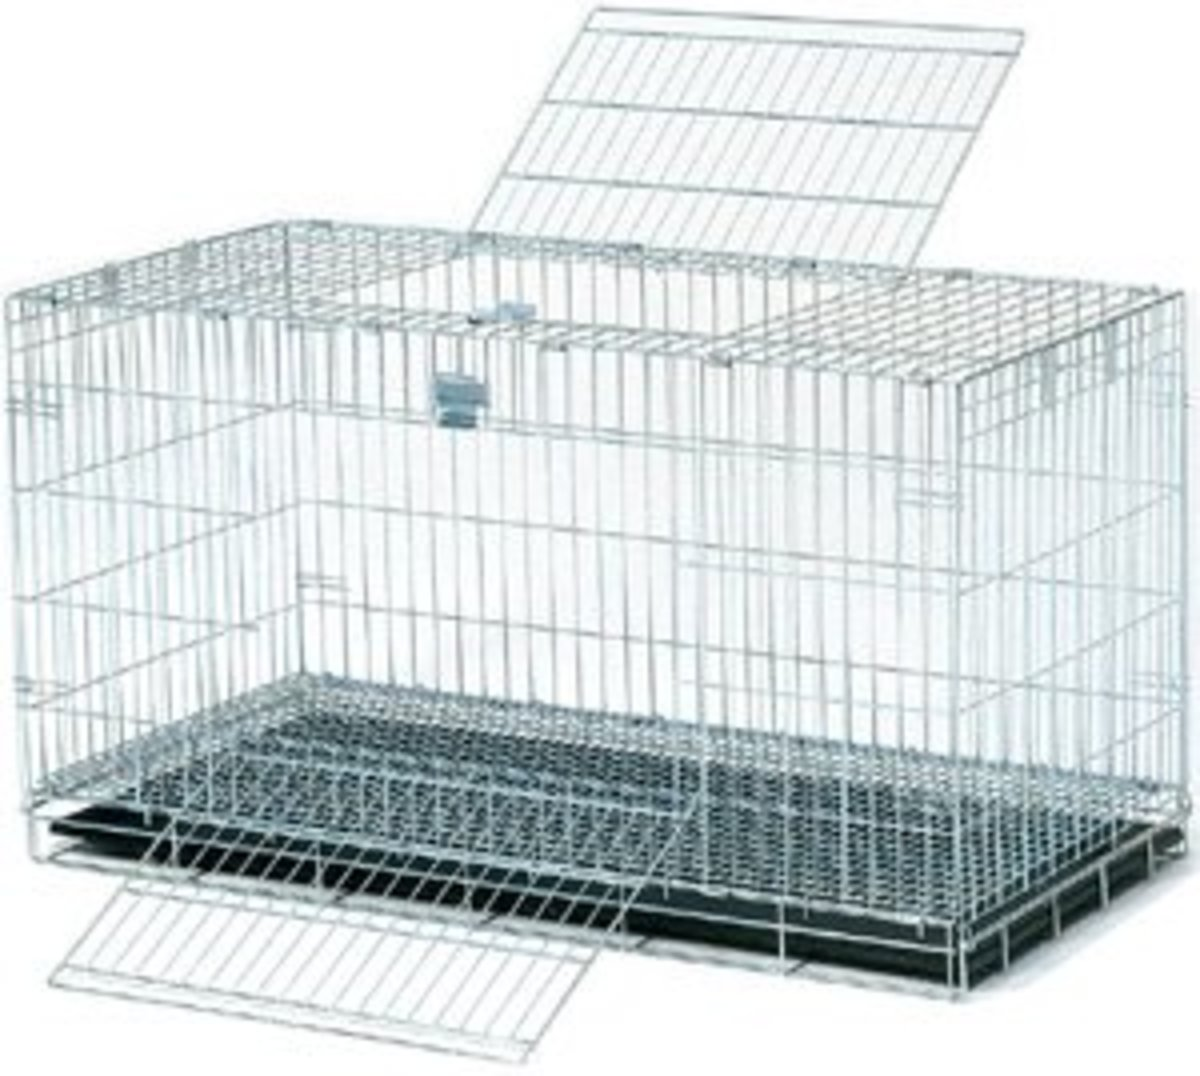 Wabbitat cages work well for diagnostic cages - they're very small but the cat won't be in it for more than a day (and if no urine and/or stool is produced in that time consult your vet!)